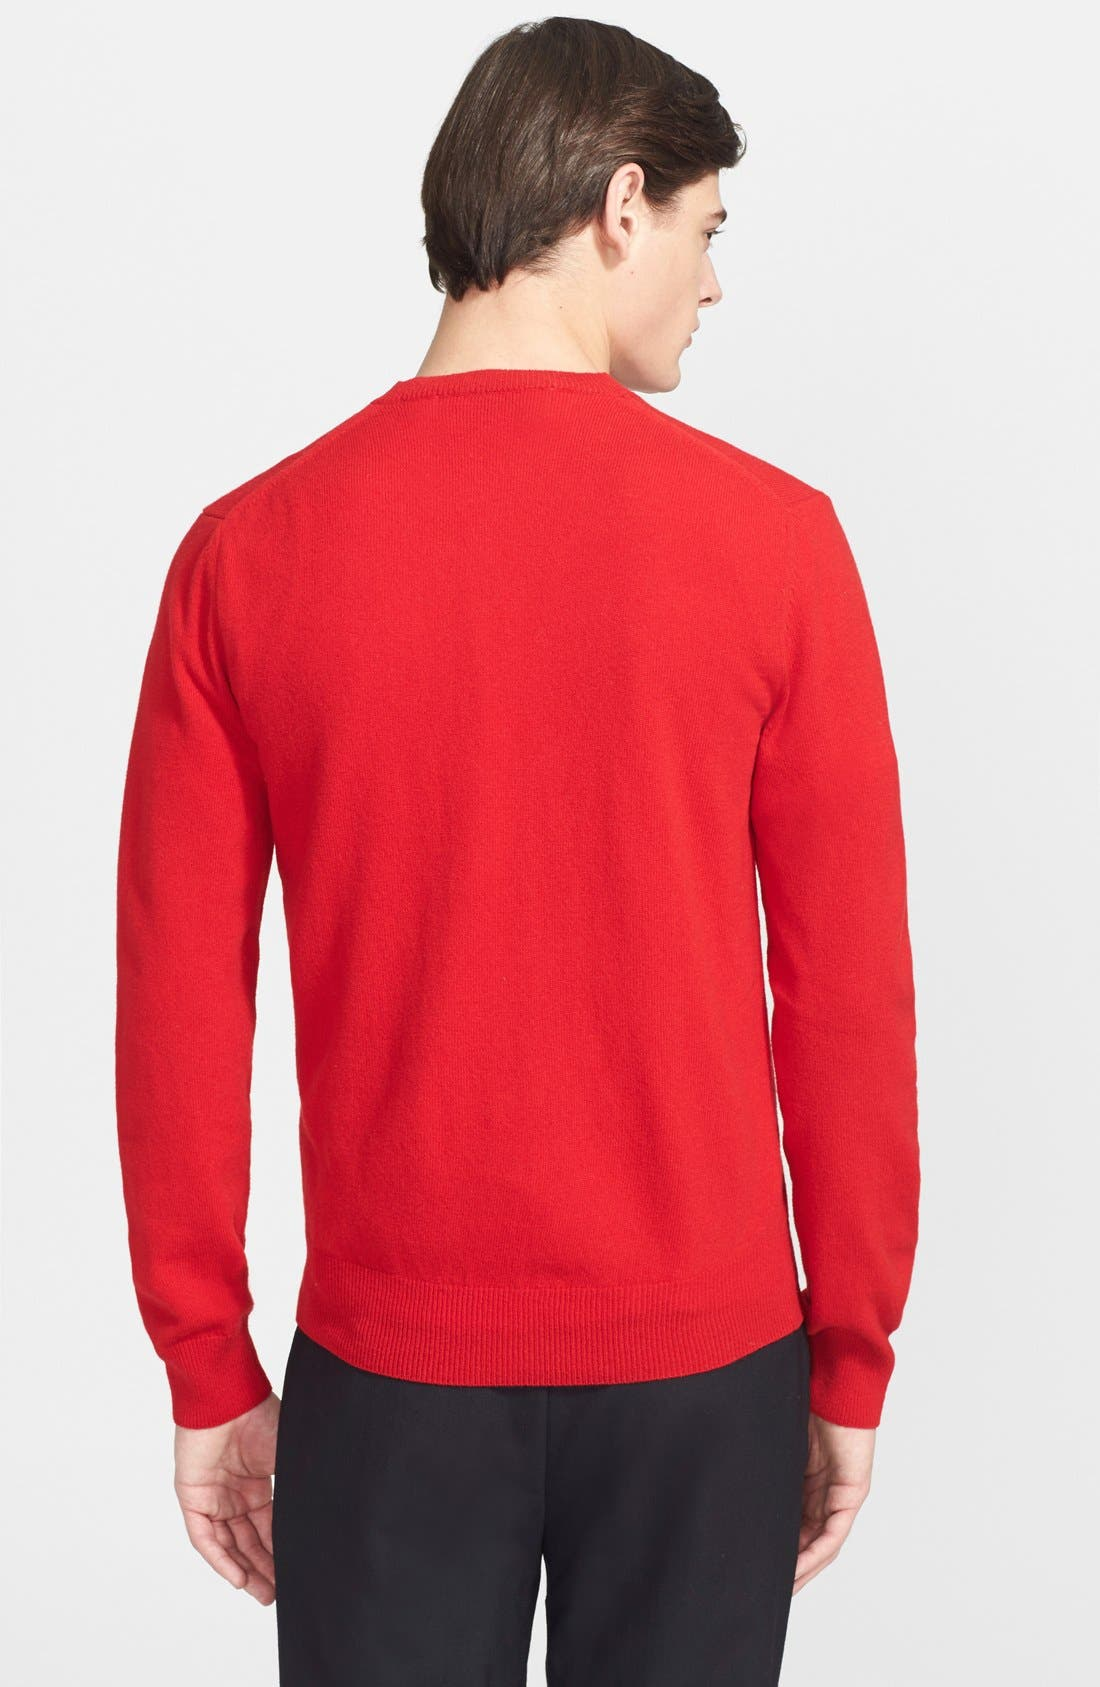 PLAY Wool Pullover,                             Alternate thumbnail 2, color,                             Red